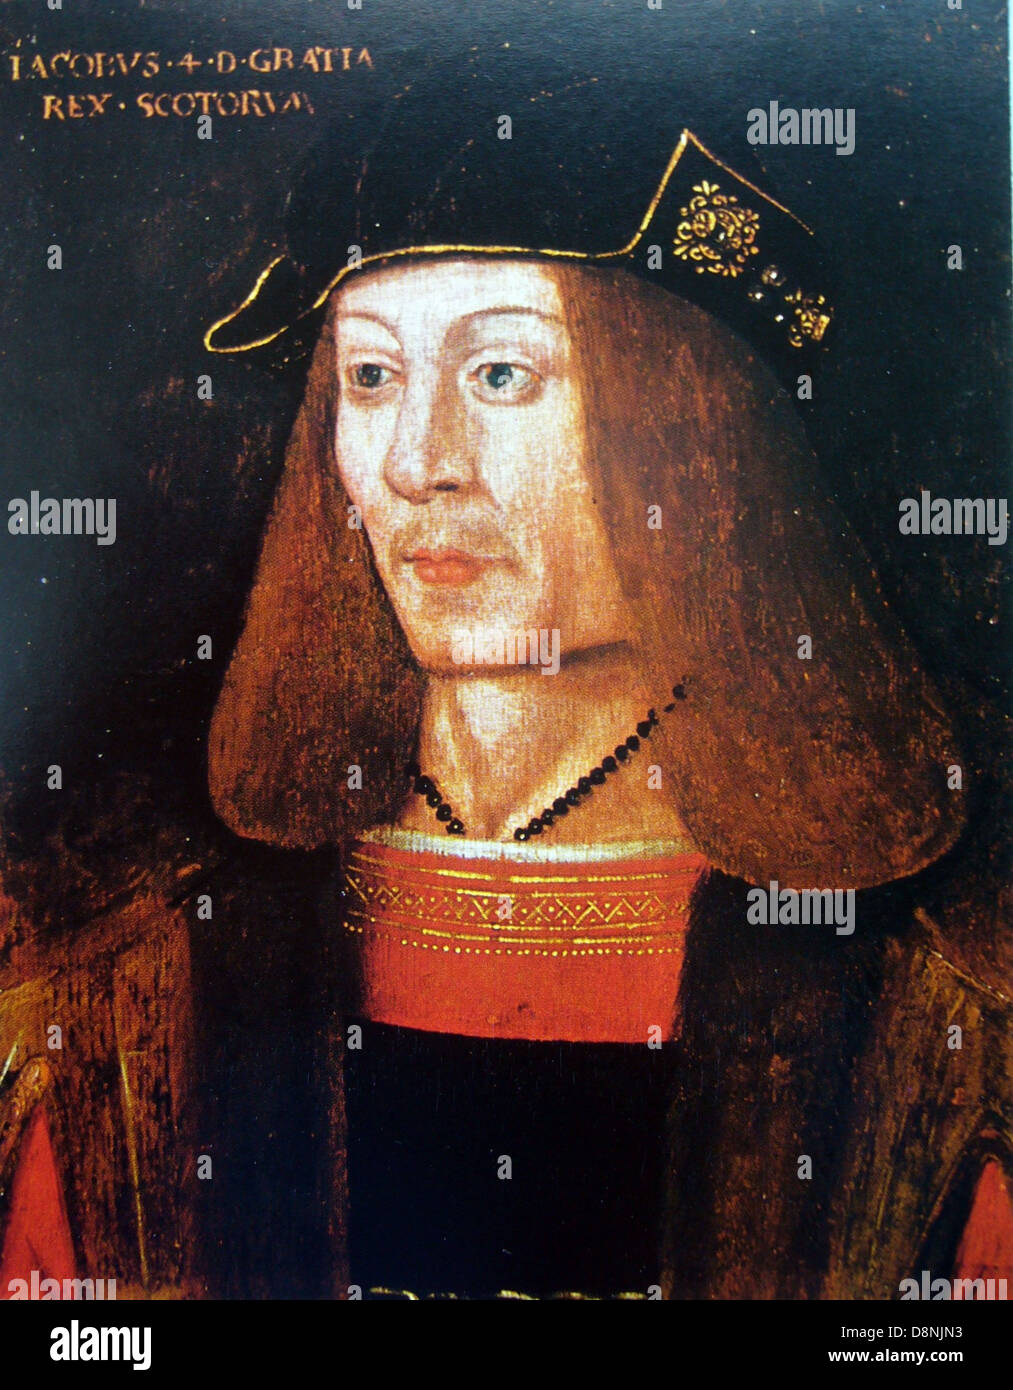 King of Scots, James IV Stock Photo